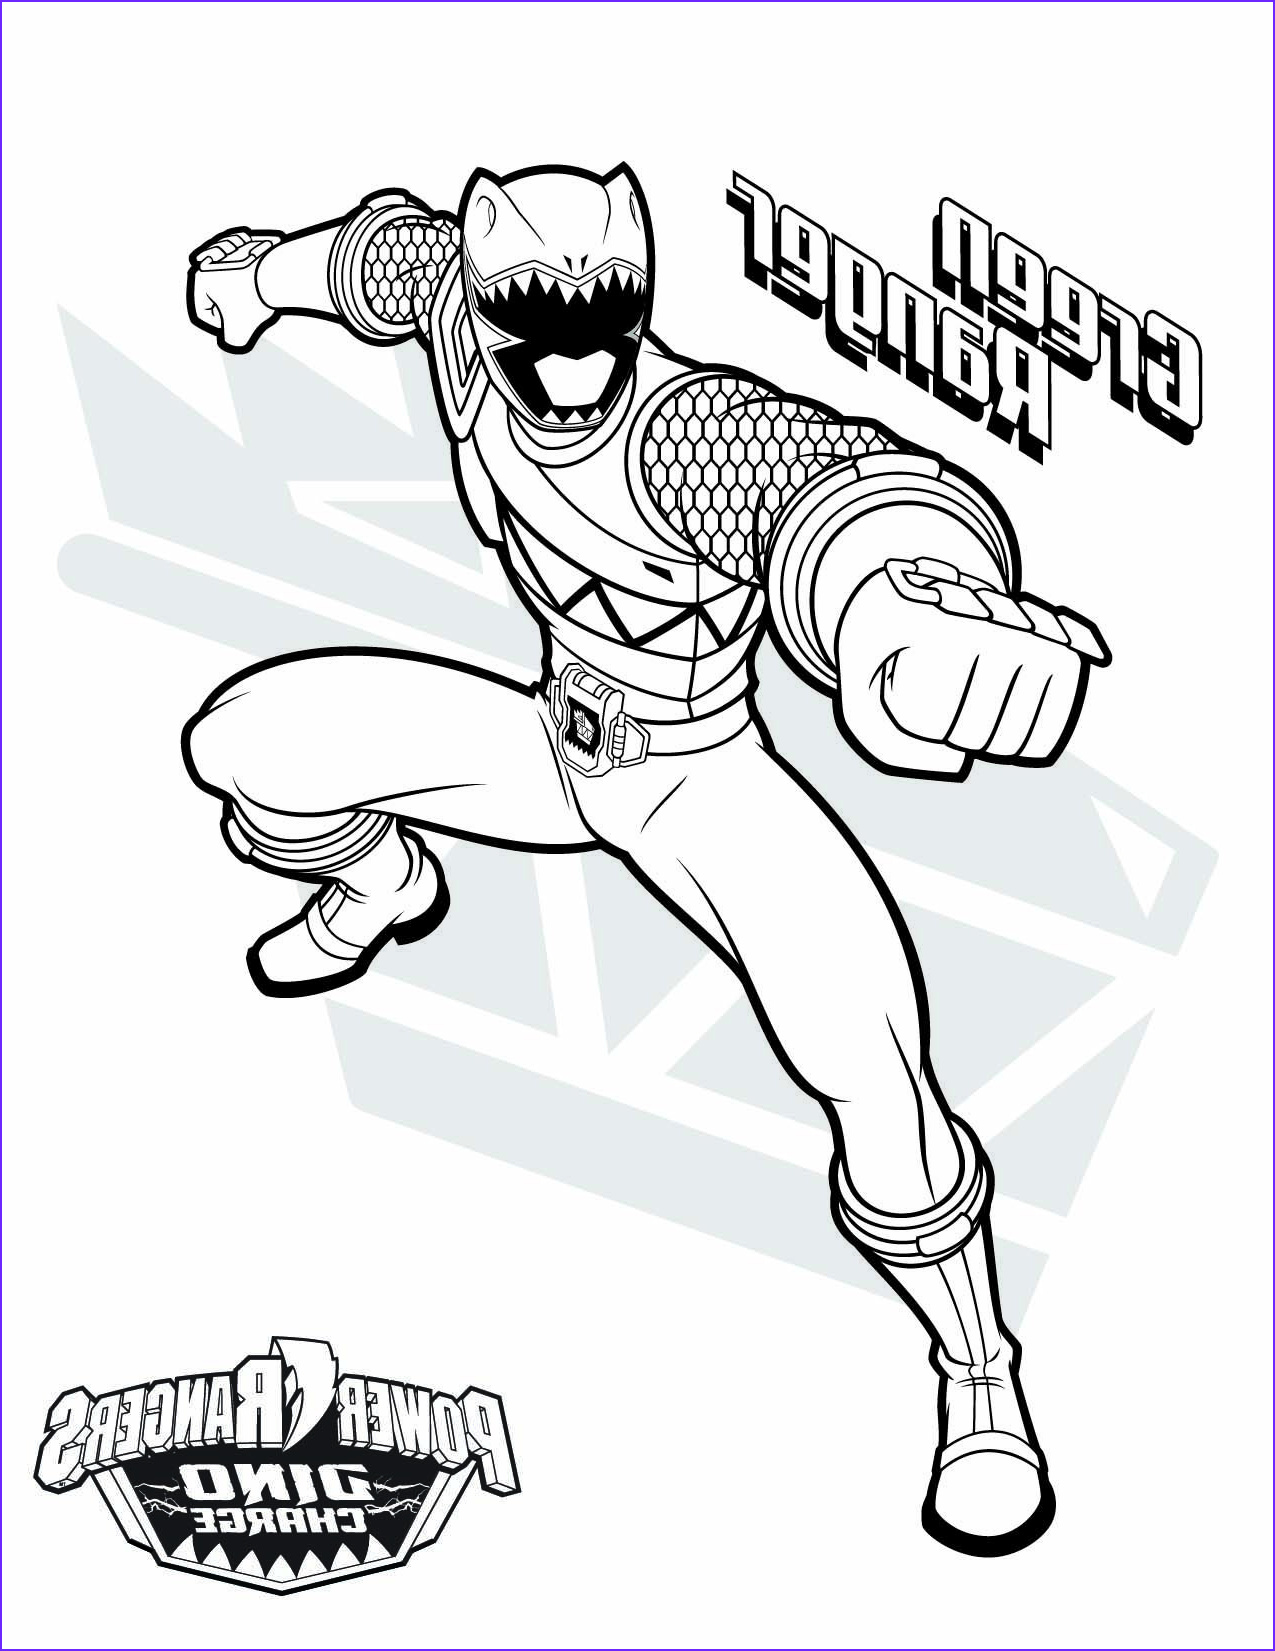 Power Ranger Coloring Cool Images Pin by Power Rangers On Power Rangers Coloring Pages In